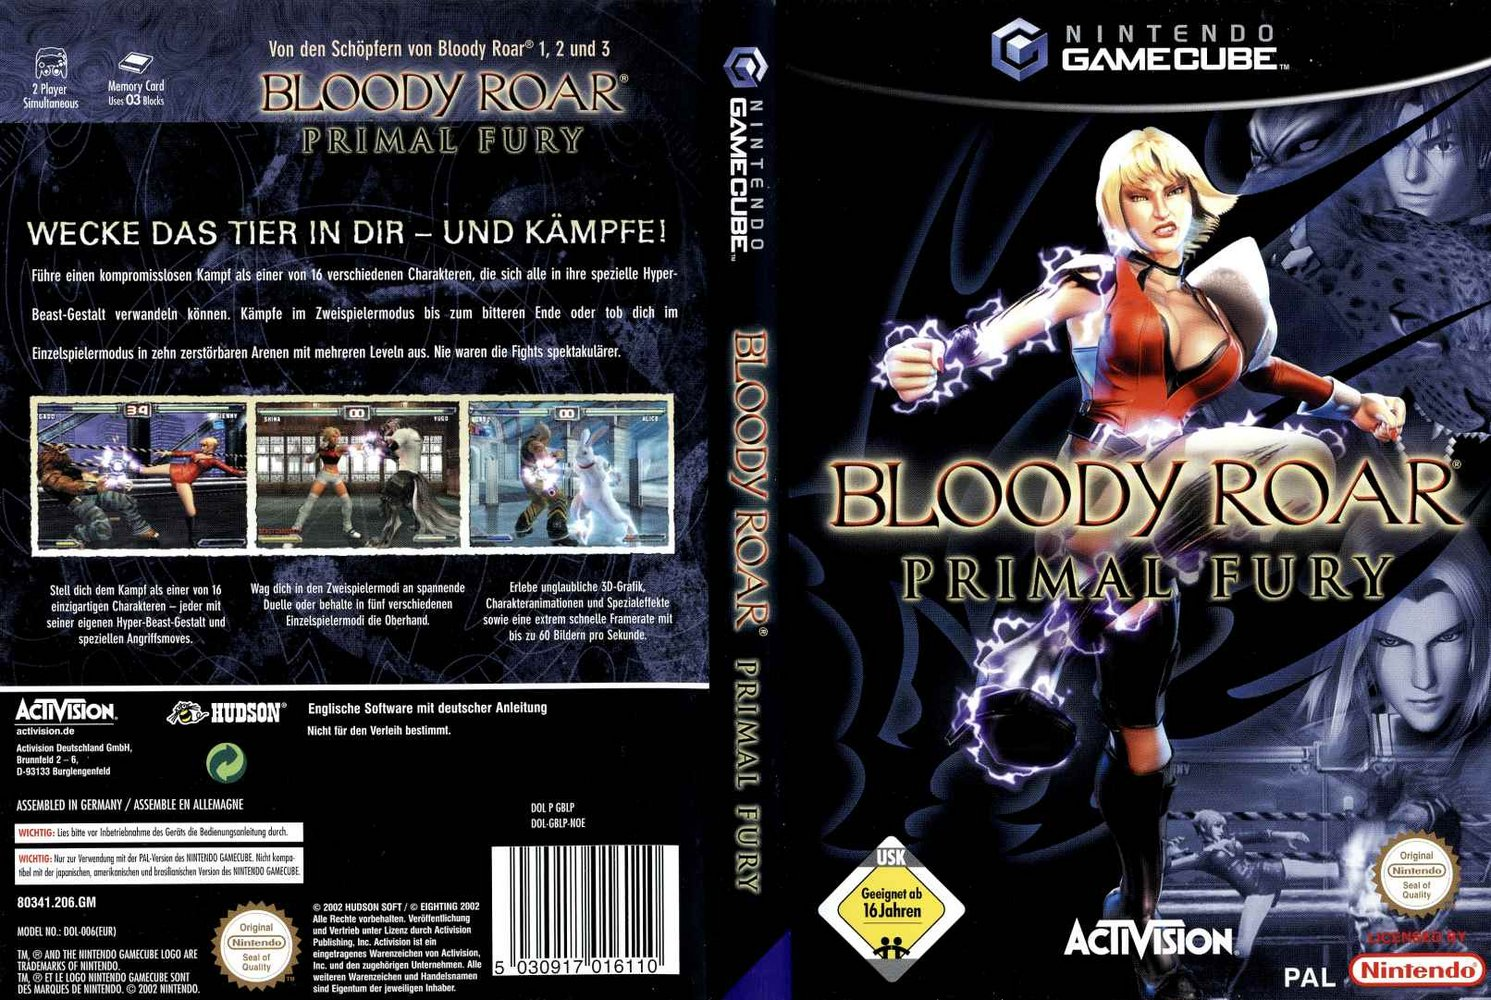 Bloody roar 2 hd xxx images pron thumbs